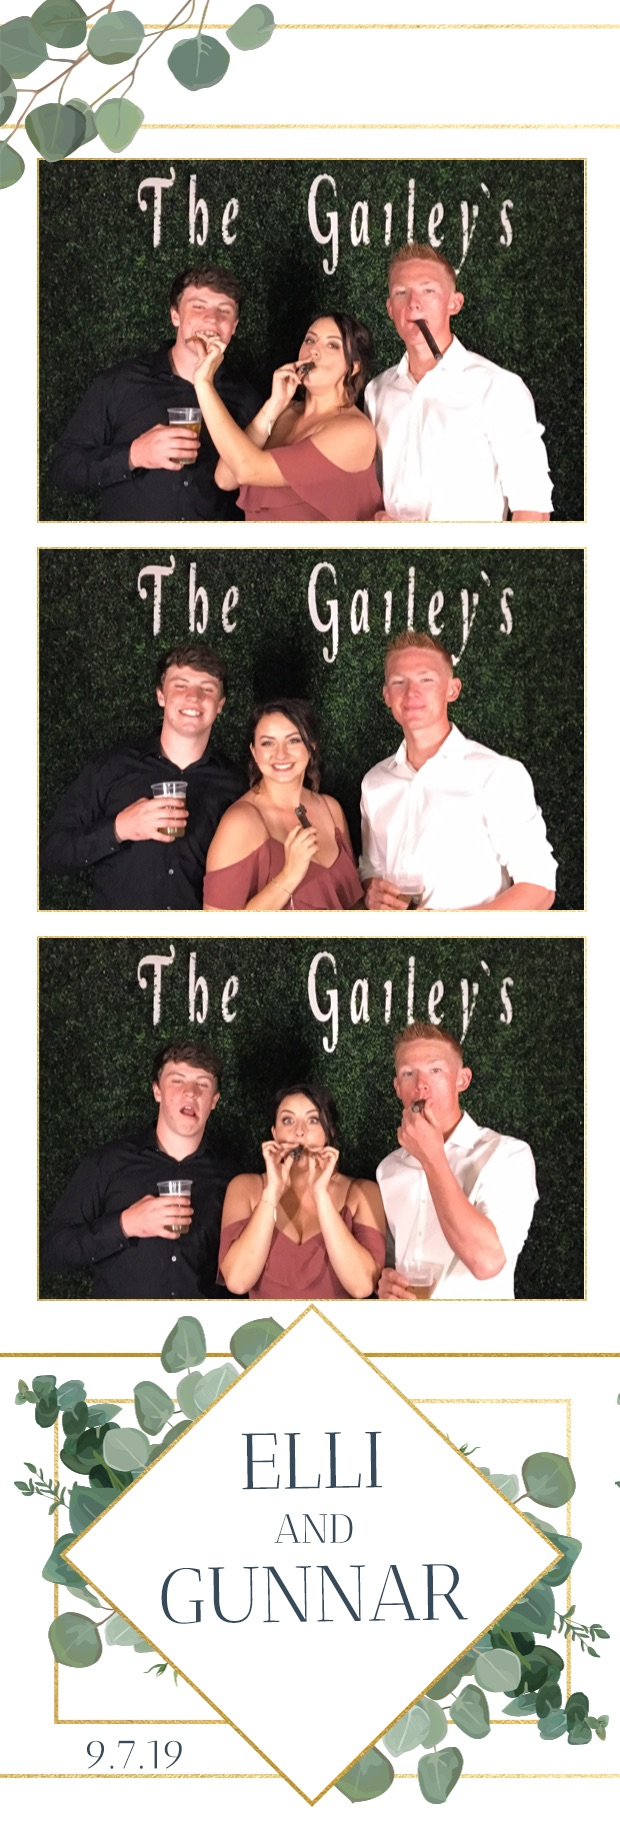 Elli & Gunnar Wedding | View more photos from the event at gallery.munsonphotobooth.com/u/MunsonPhotoBooth/Elli-Gunnar-Wedding